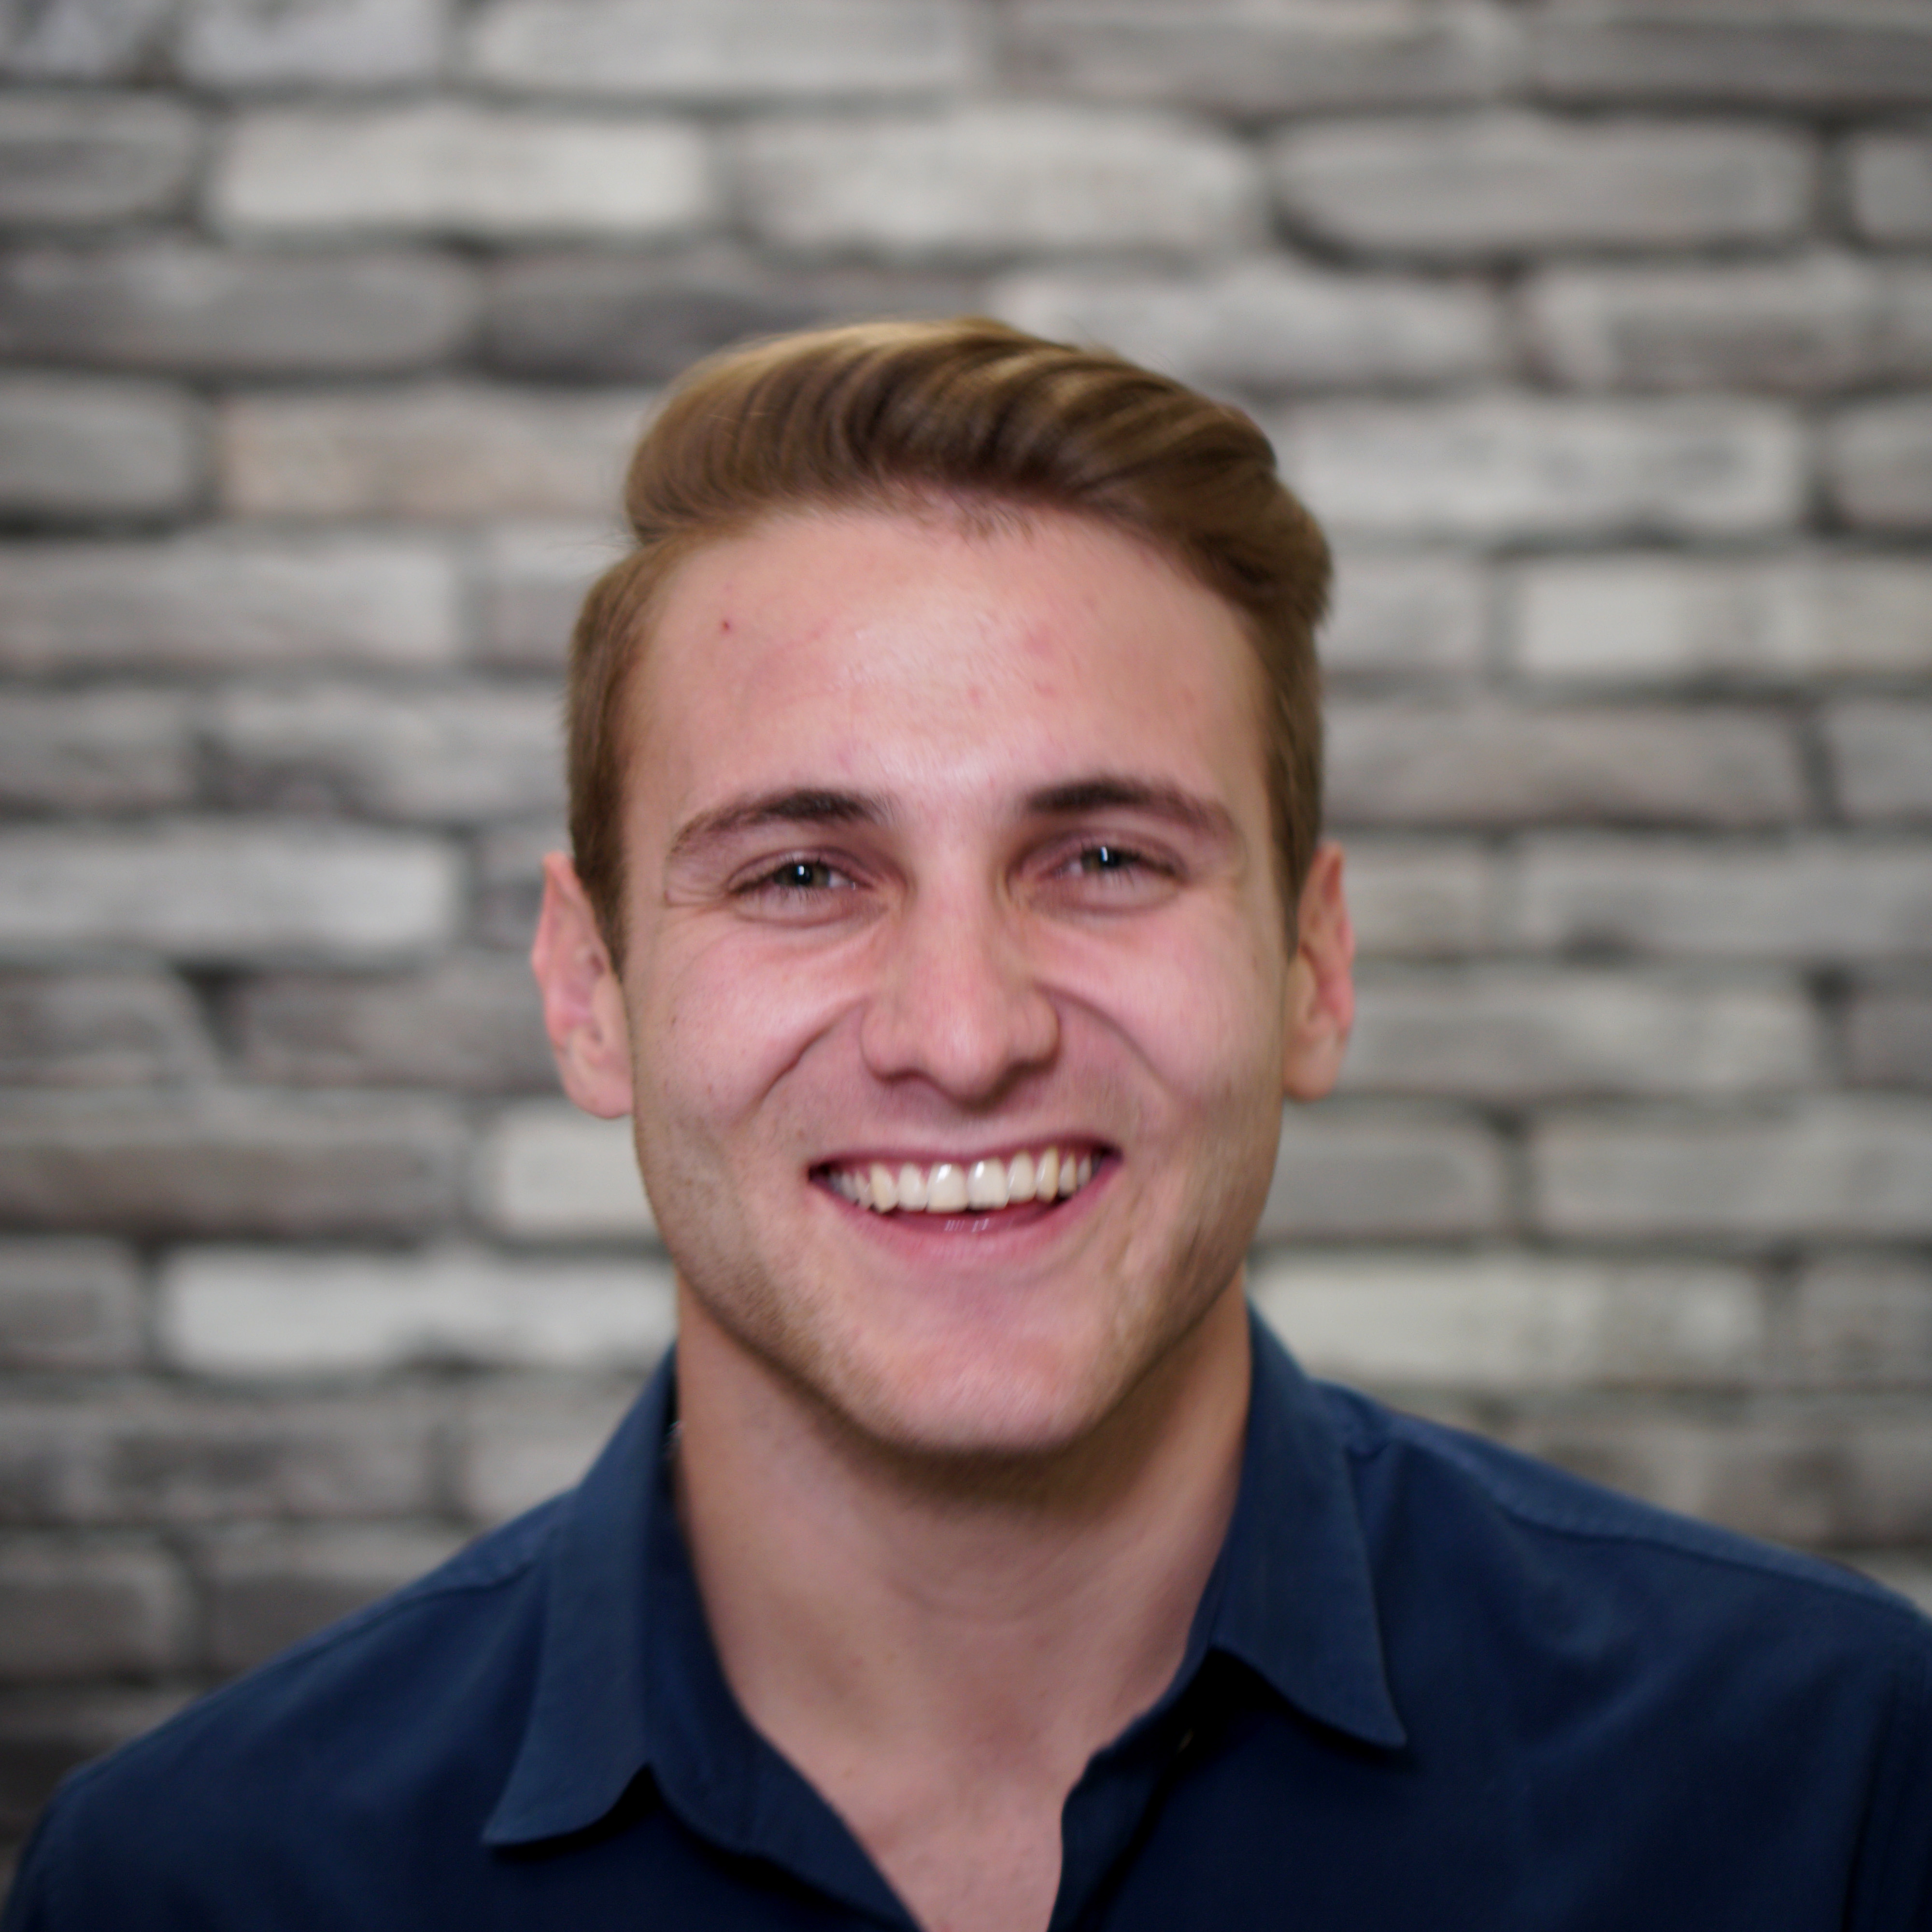 Austin Stofer professional headshot